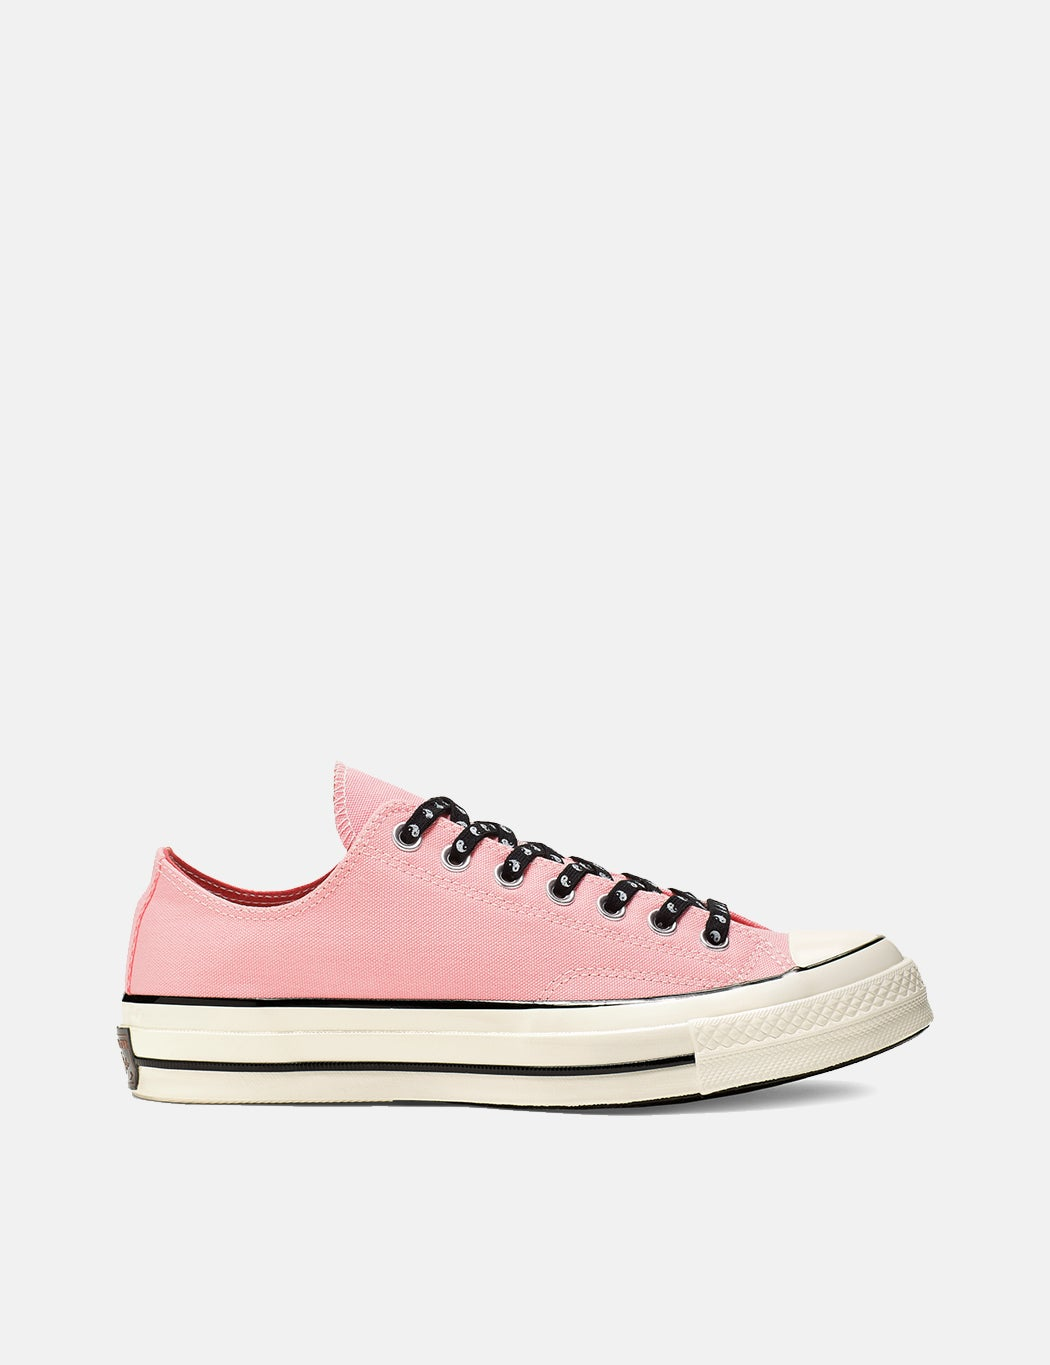 14f190b6f1d7 Converse 70 s Chuck Low 164212C (Canvas) in Bleached Coral Dusty Peach